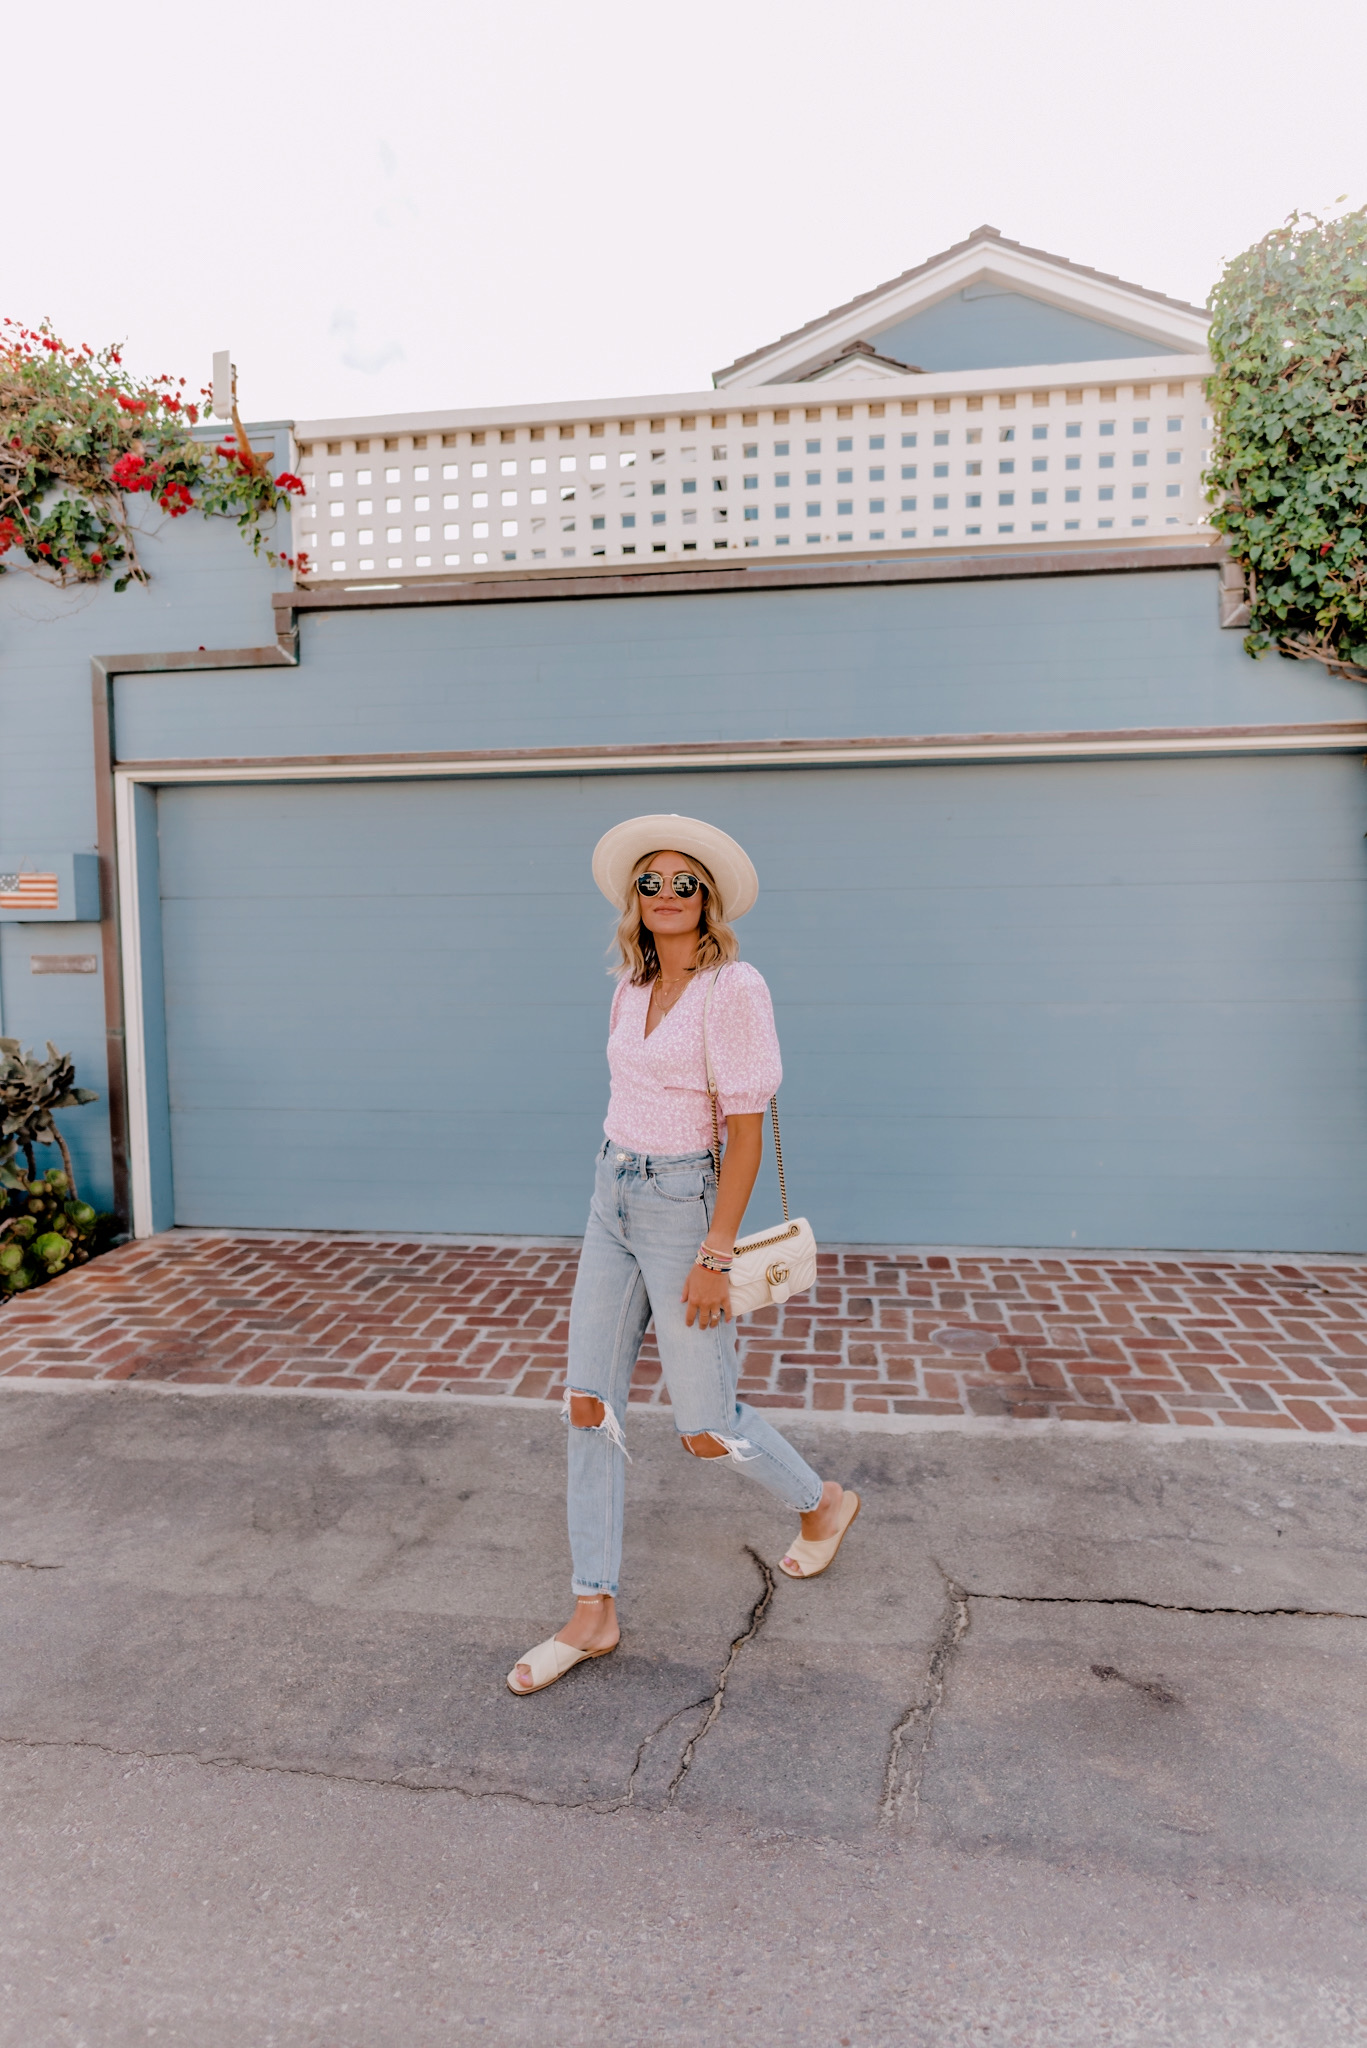 Summer Clothing by popular San Diego fashion blog, Navy Grace: image of a woman standing in front of a blue building and wearing a and other stories Printed Puff Sleeve Wrap Top, TopShop Bleach Wash Double Rip Mom Tapered Jeans, Gigi Pip ARLO CREAM BAND - STRAW TEARDROP FEDORA, Everlane The Day Crossover Sandal, and holding a Gucci Small Matelassé Leather Shoulder Bag.